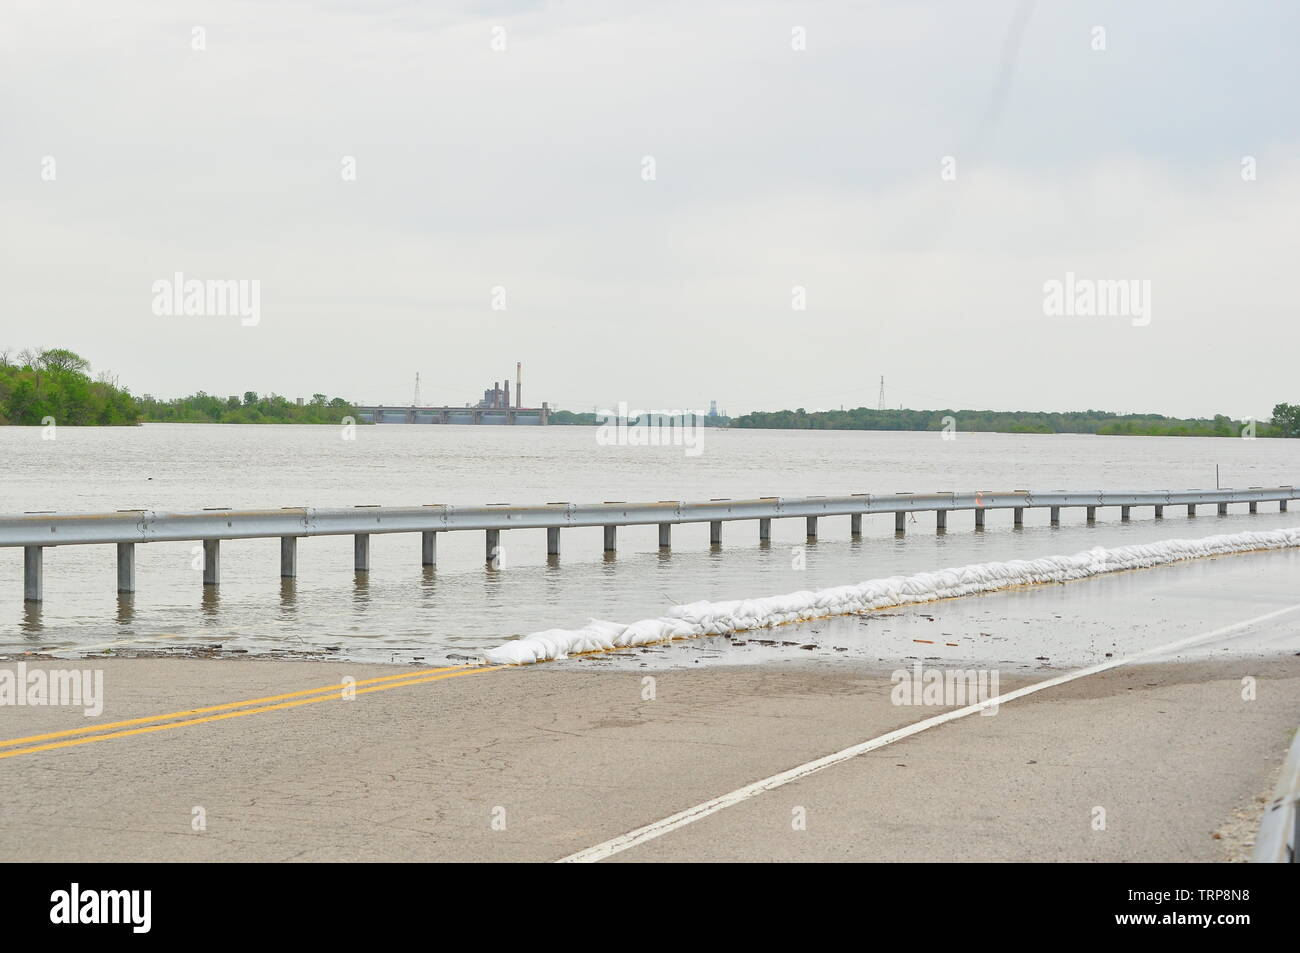 Flooding on the Mississippi river in Missouri Stock Photo